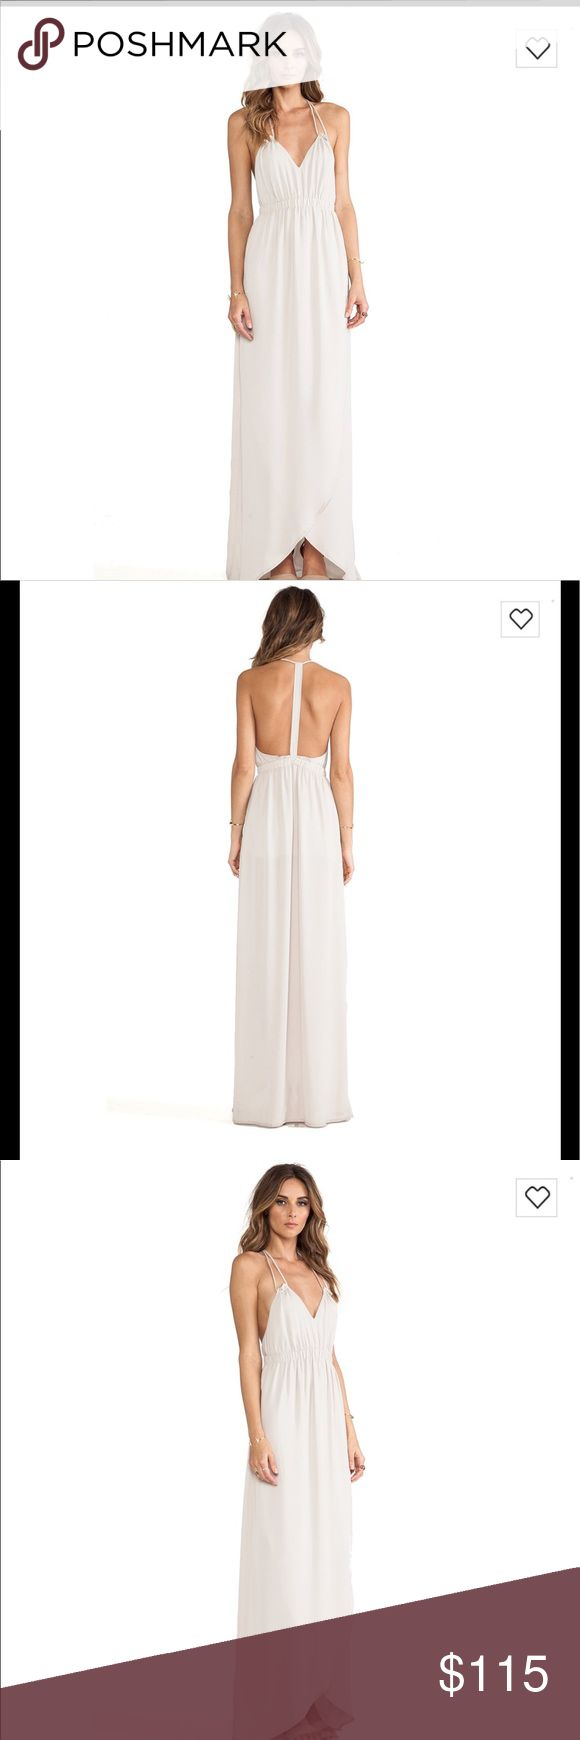 "Donna Mizani Tulip Maxi dress chiffon gown Details - V-neck - Sleeveless - Double halter straps with ruffles - T-back - Elasticized waist - Draped skirt - Lined skirt - Approx.  56"" length - Made in USA  ❤️Brand new with tag . No flaw or alteration . True white . donna mizani Dresses"